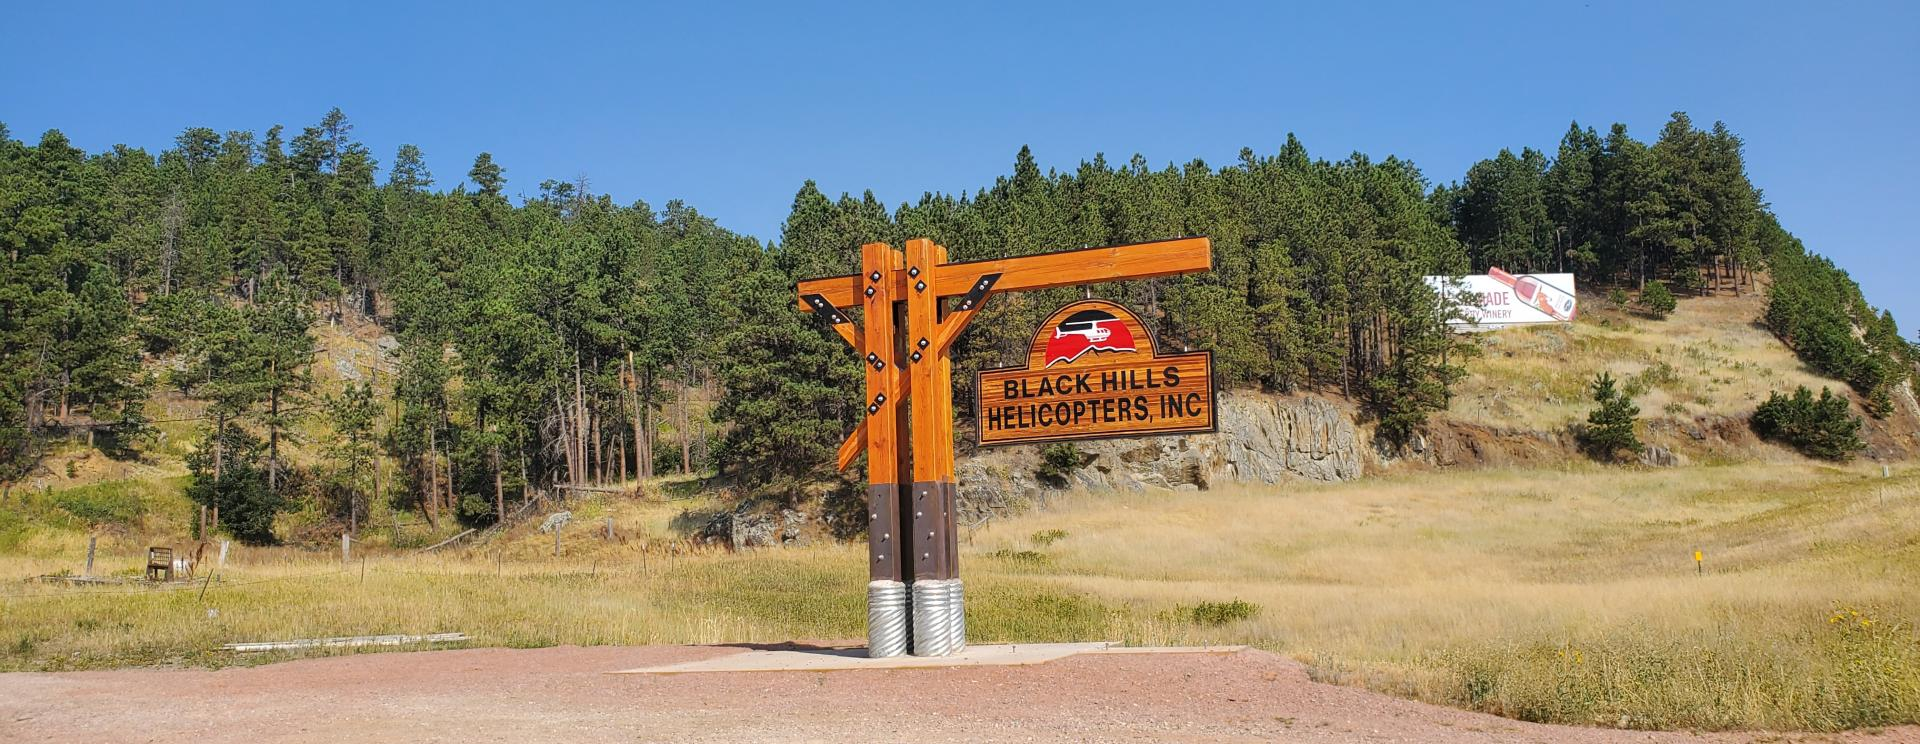 Black Hills Helicopters